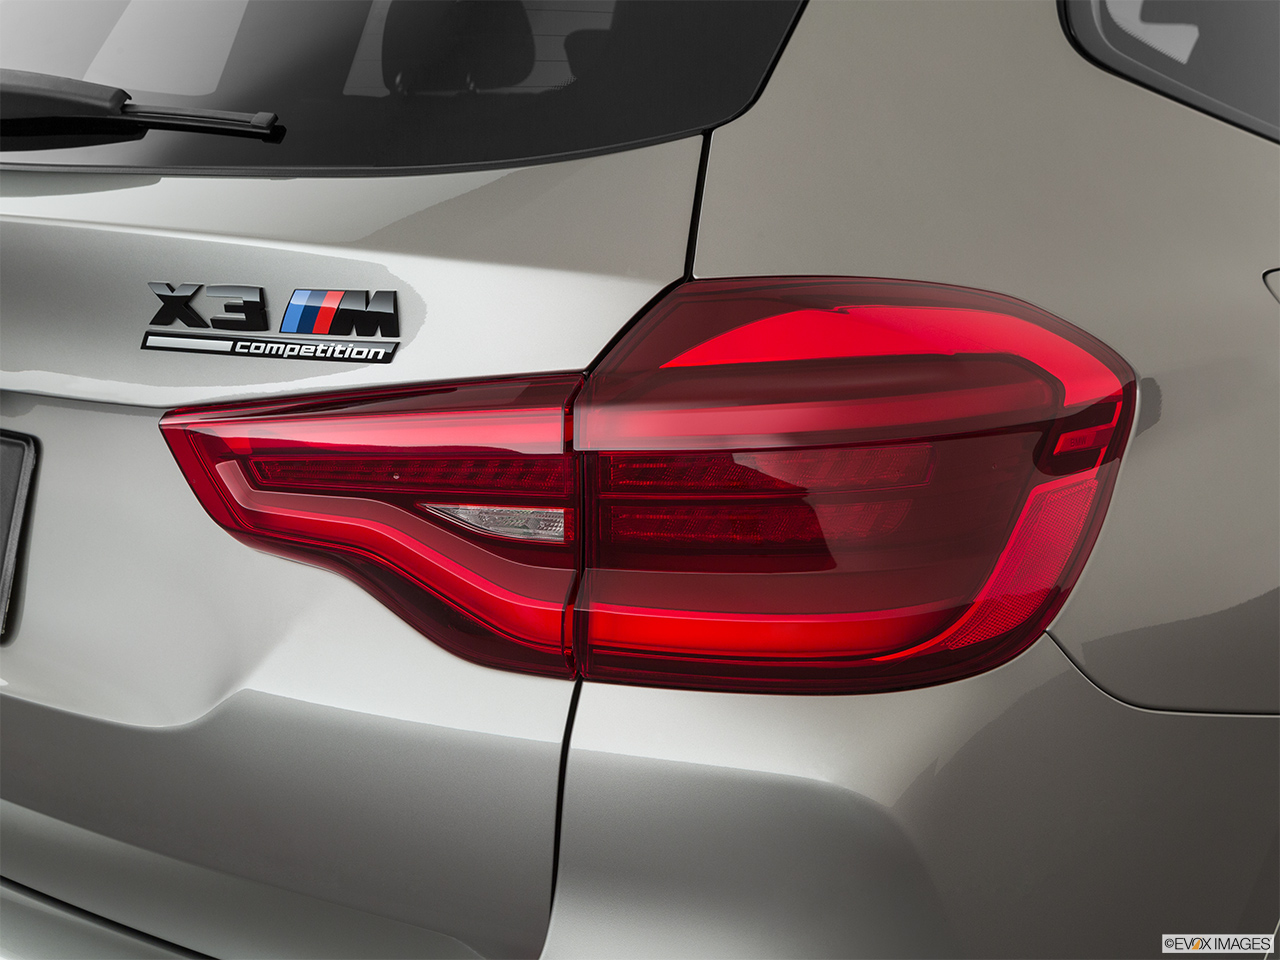 2020 BMW X3 M Competition Passenger Side Taillight.